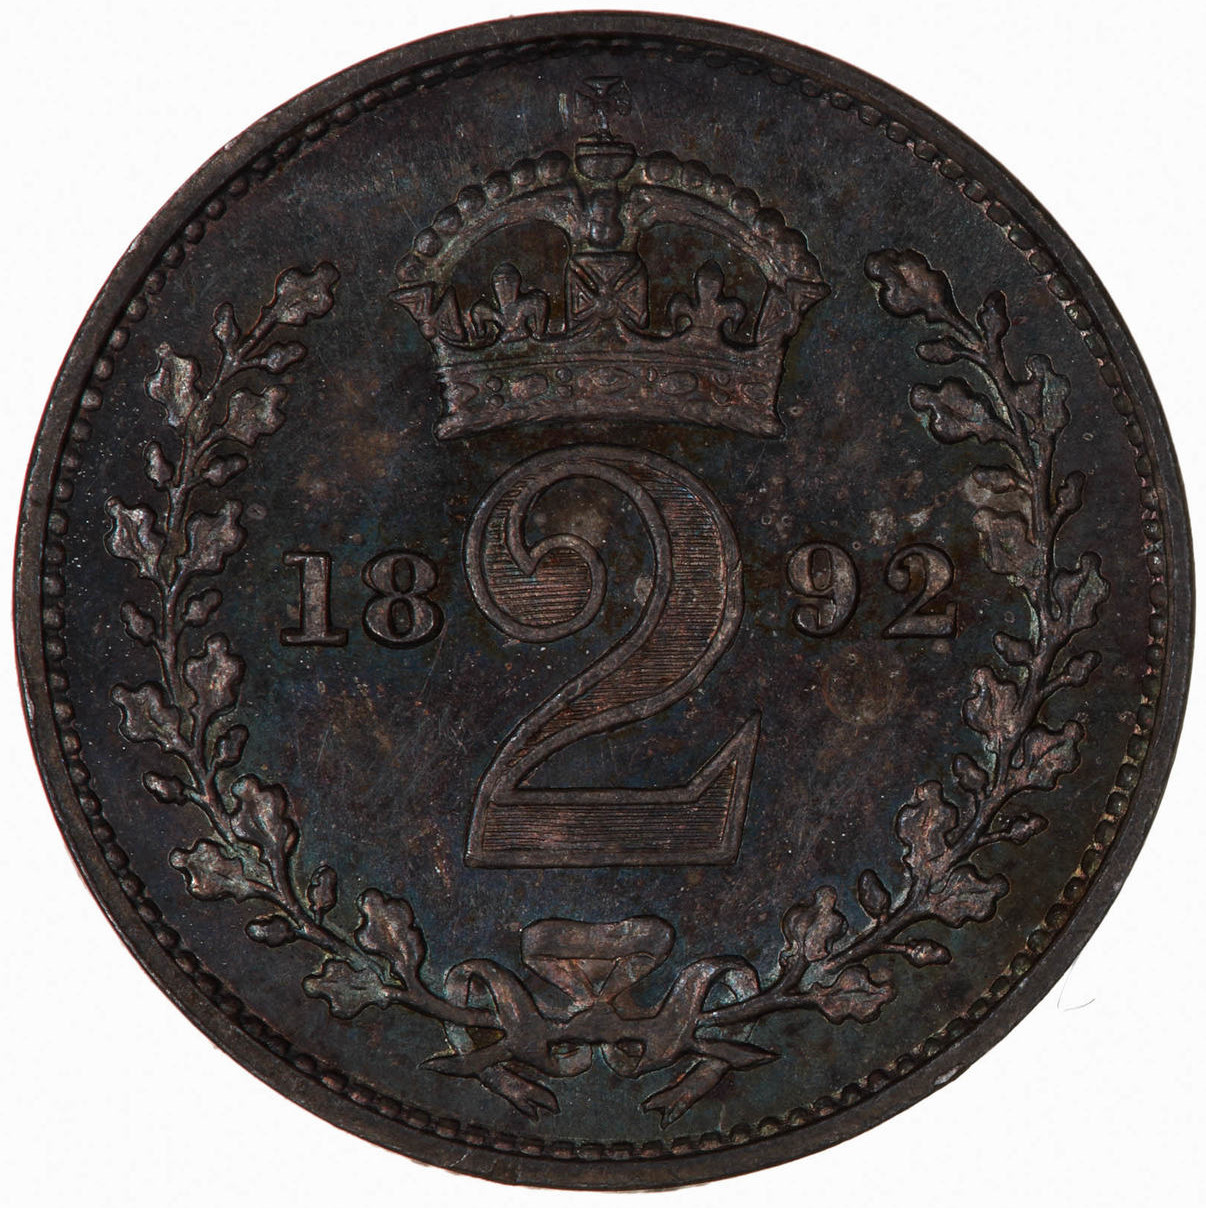 Twopence 1892 (Maundy): Photo Coin - Twopence (Maundy), Queen Victoria, Great Britain, 1892